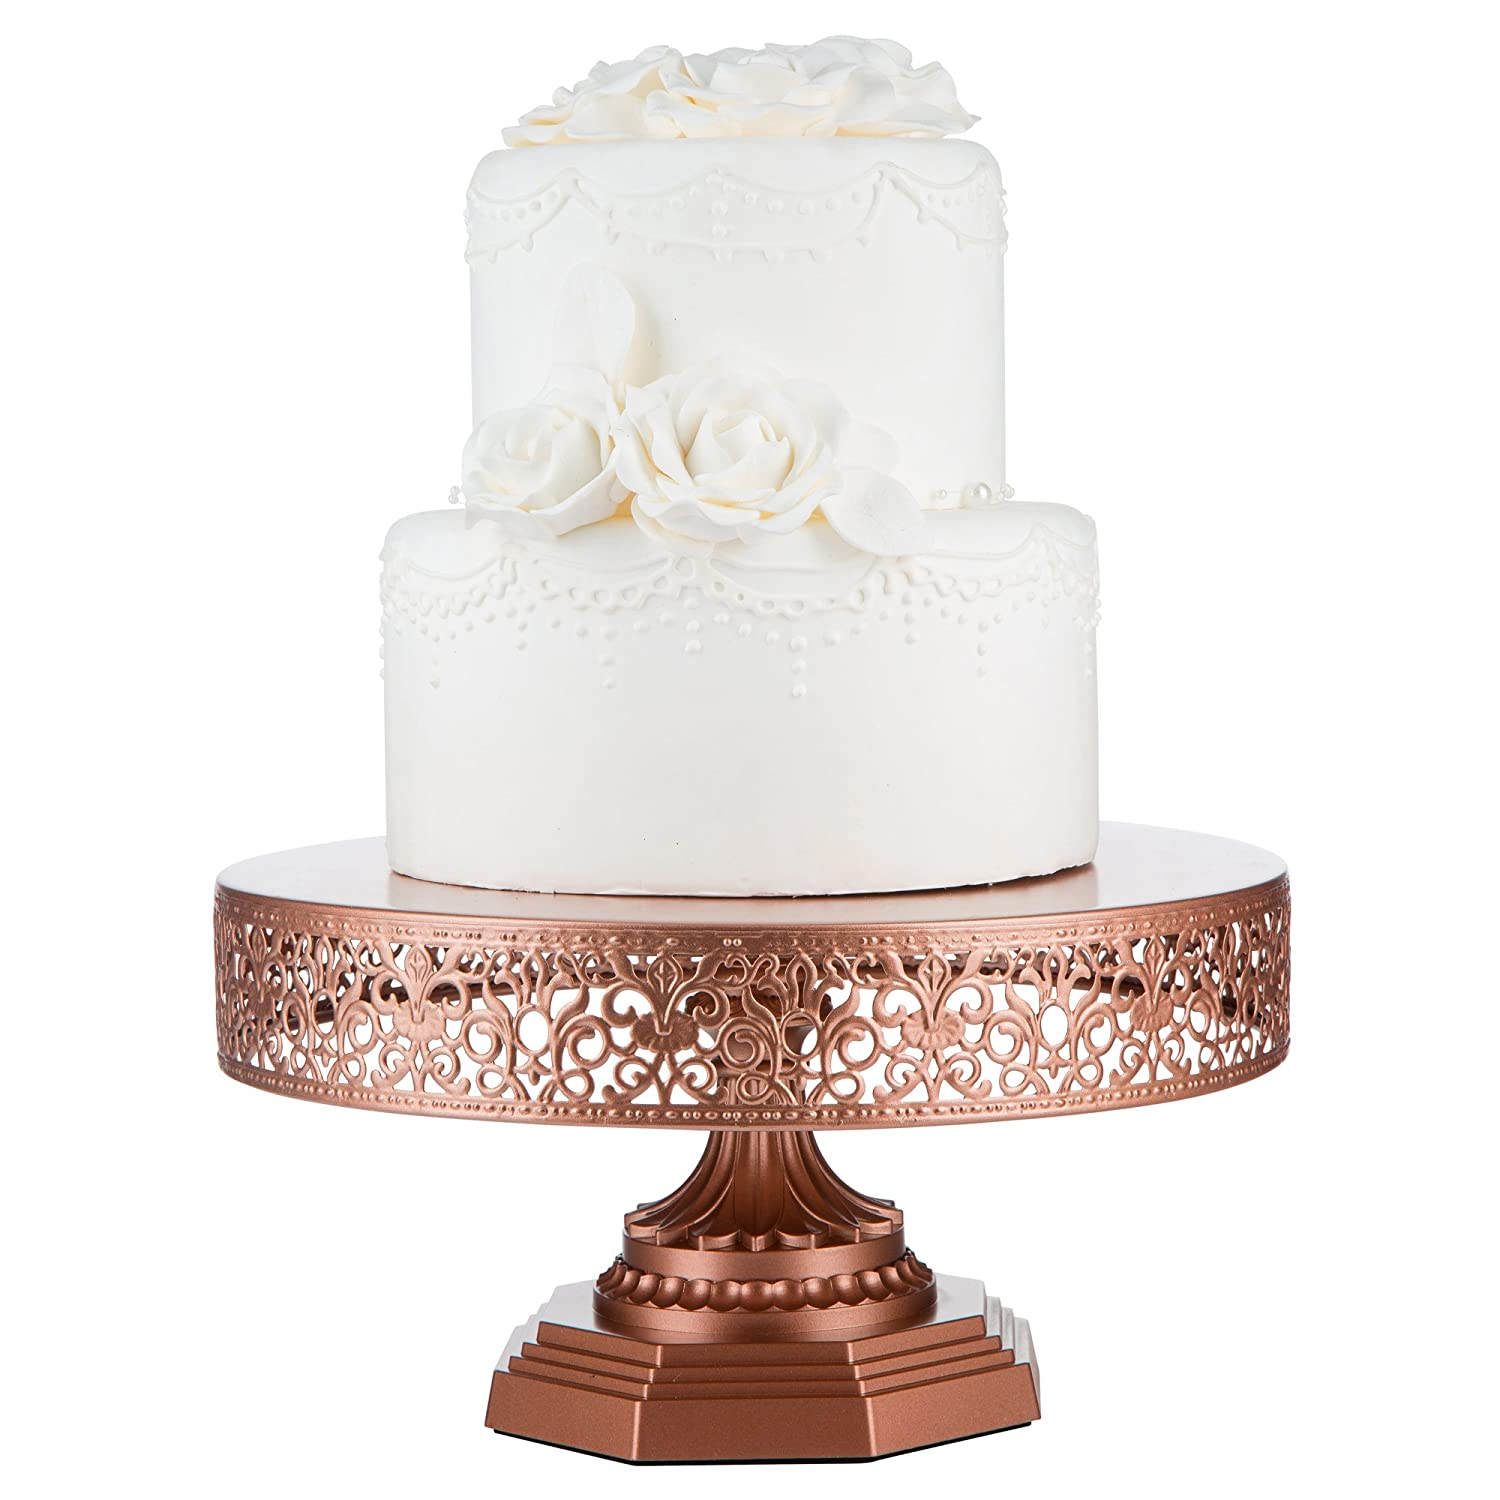 Decorative Cake Stands Amazoncom Victoria Collection Rose Gold Round Metal Cake